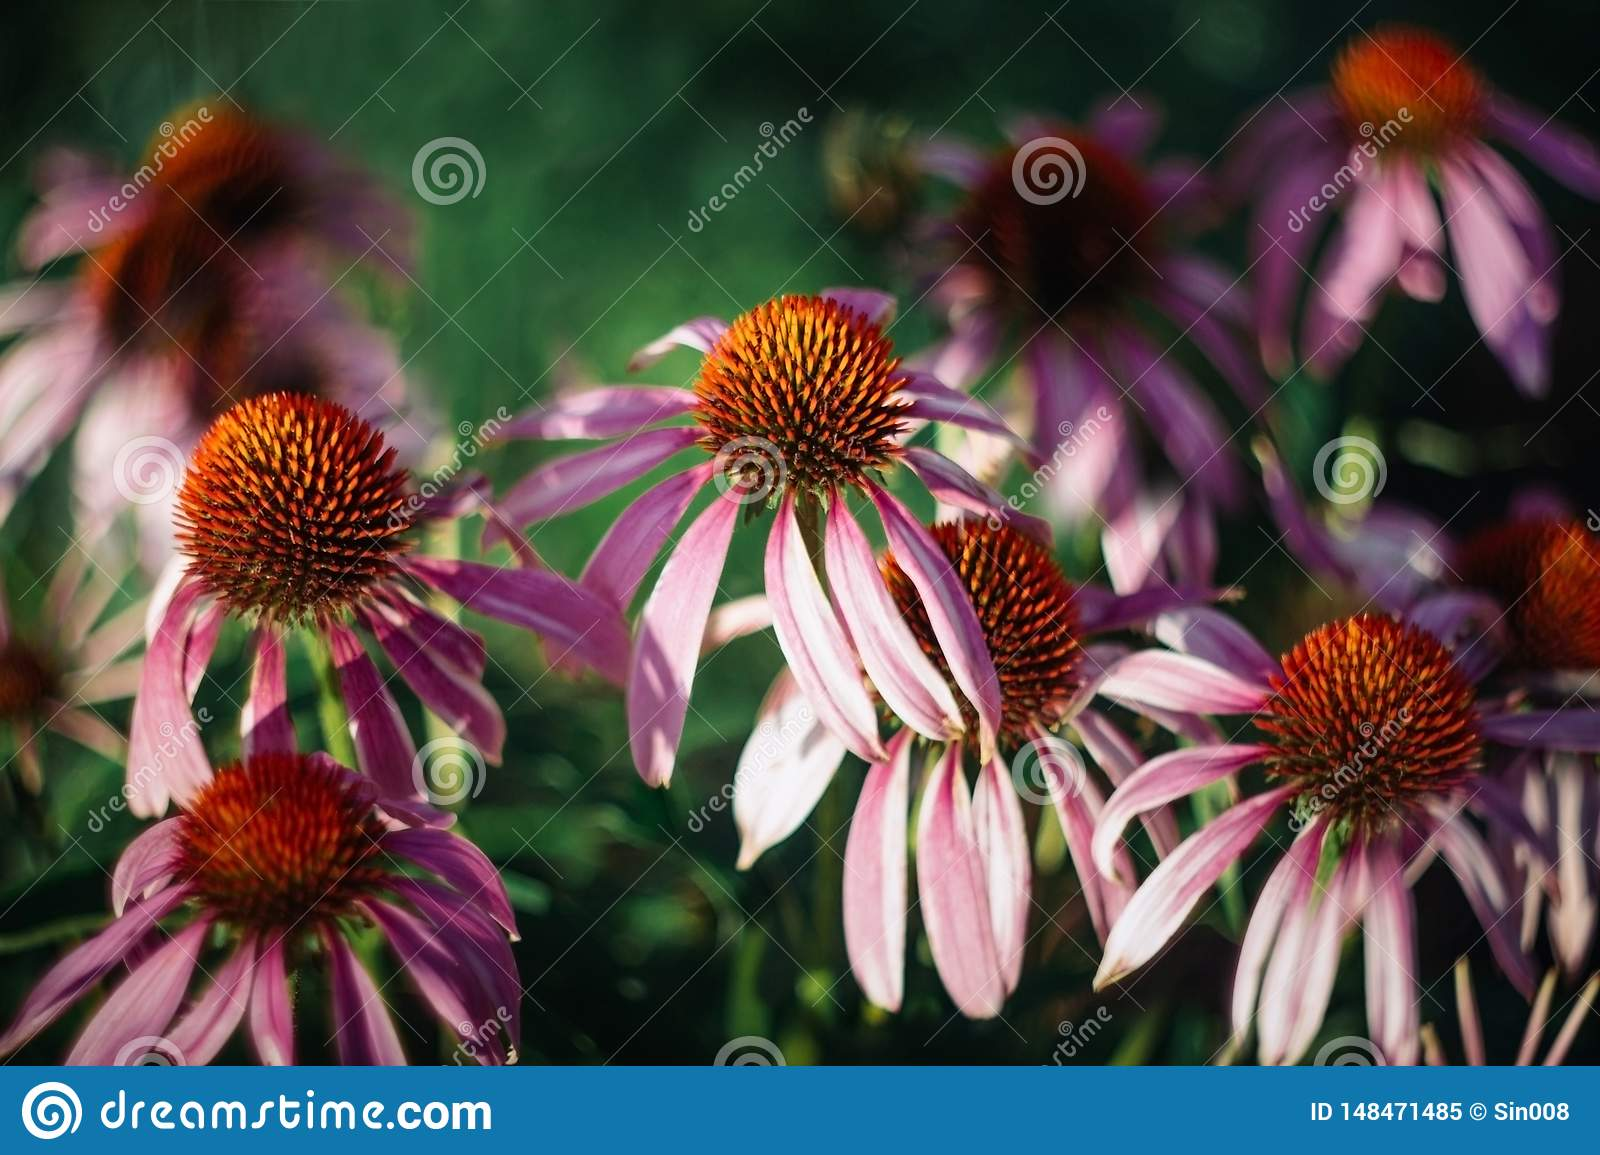 Bright beautiful pink flowers on green background. Echinacea purpurea Magnus. Medicinal useful garden plants